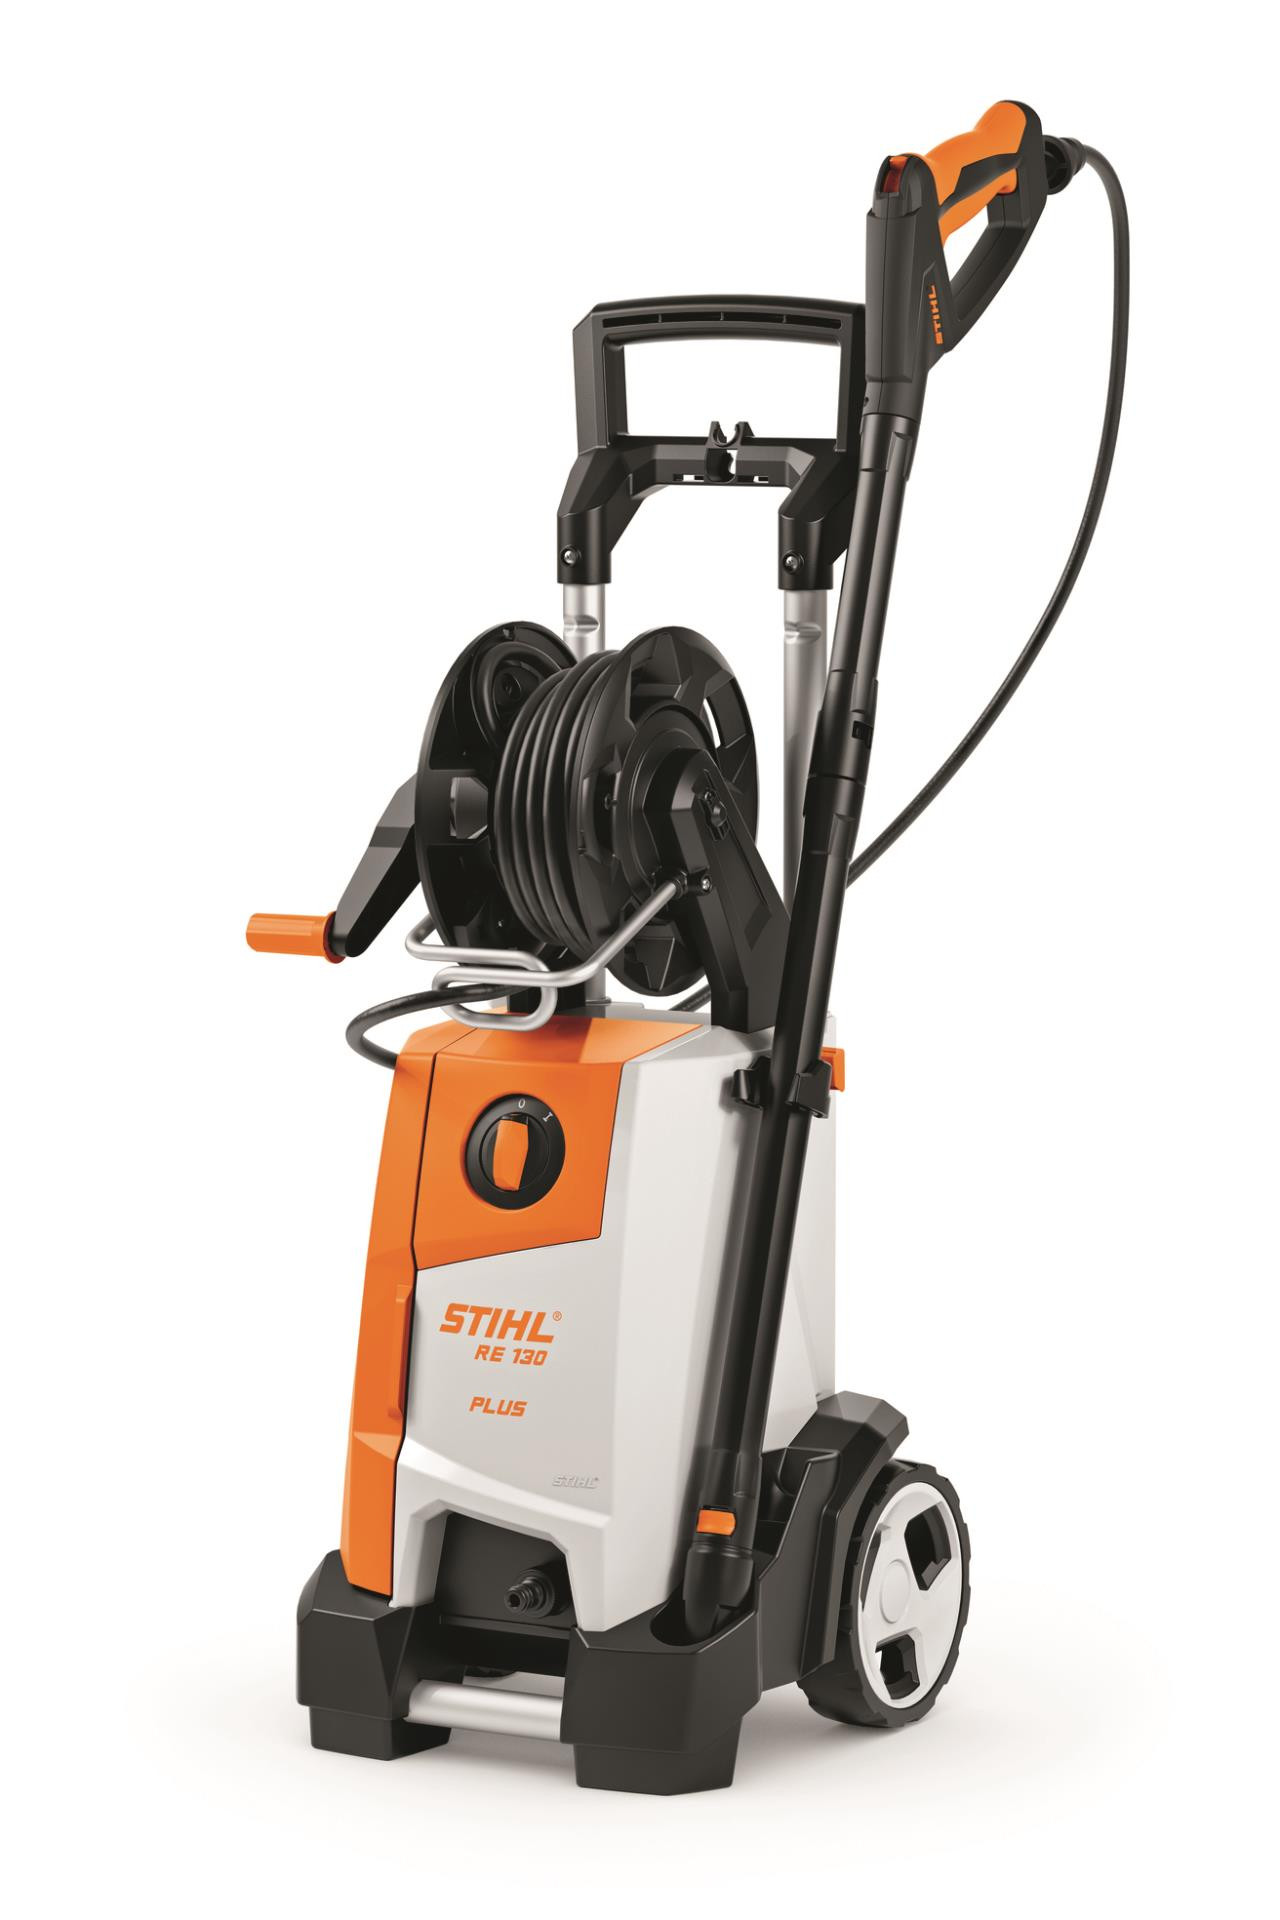 Stihl RE130Plus Højtryksrenser 10-135Bar/9m.Slange